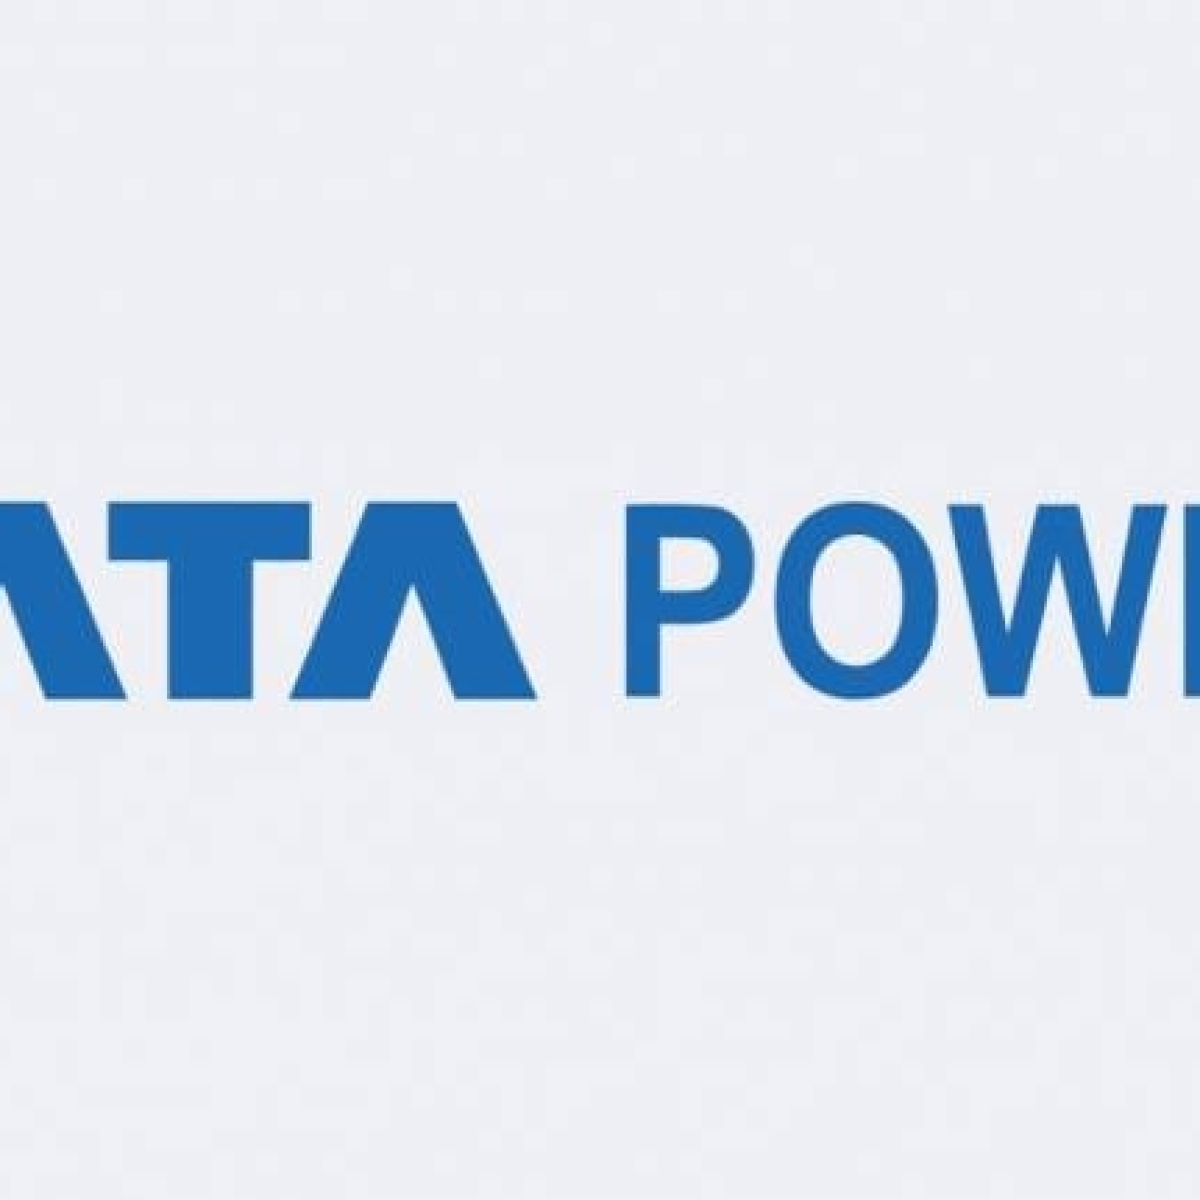 Tata Sons to increase 9.94% stake in Tata Power by investing Rs 2,600 crore